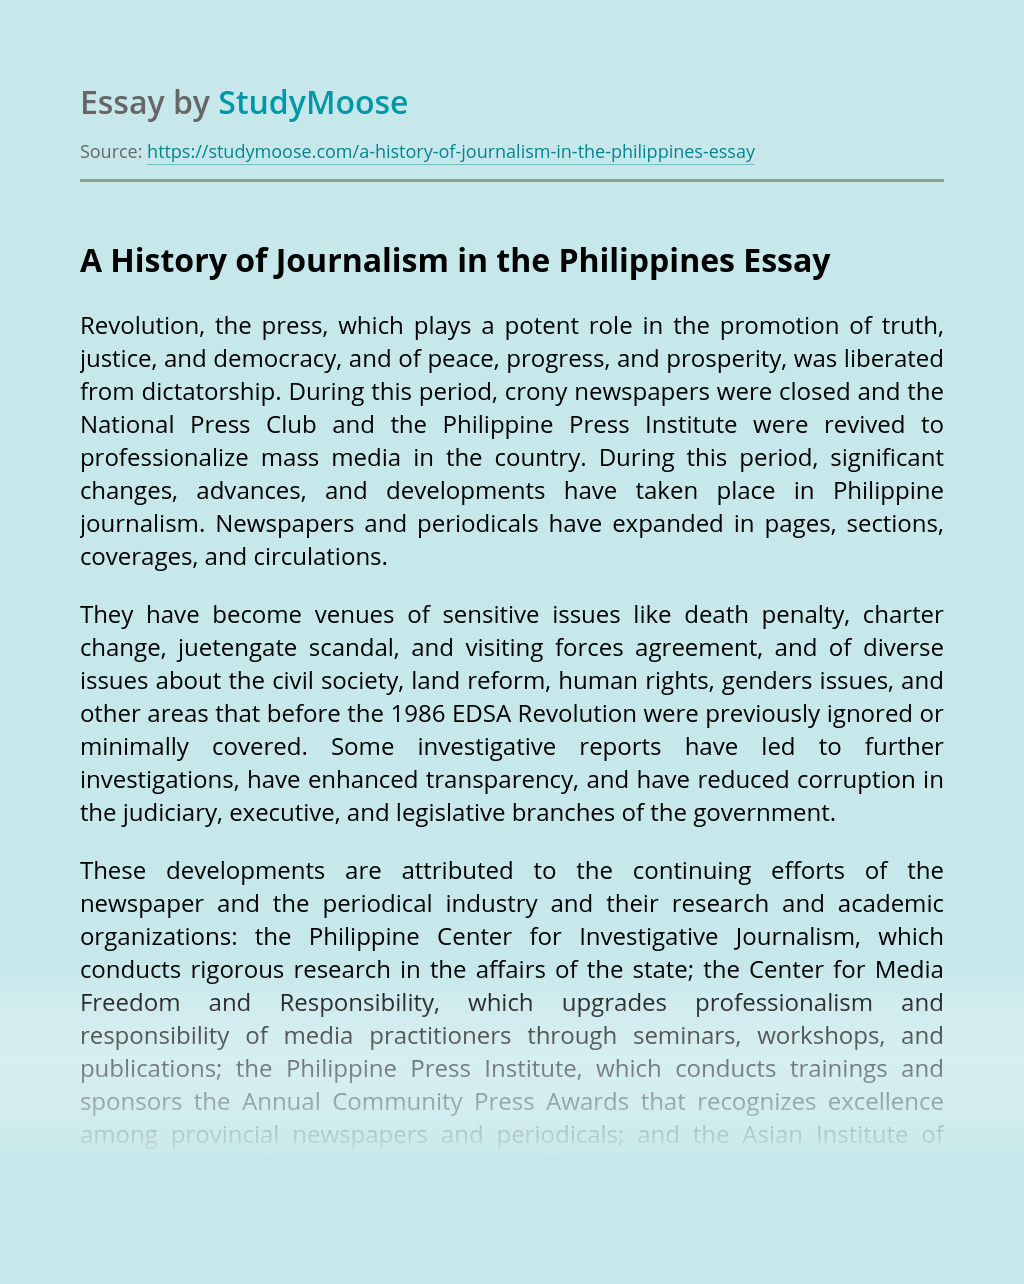 A History of Journalism in the Philippines